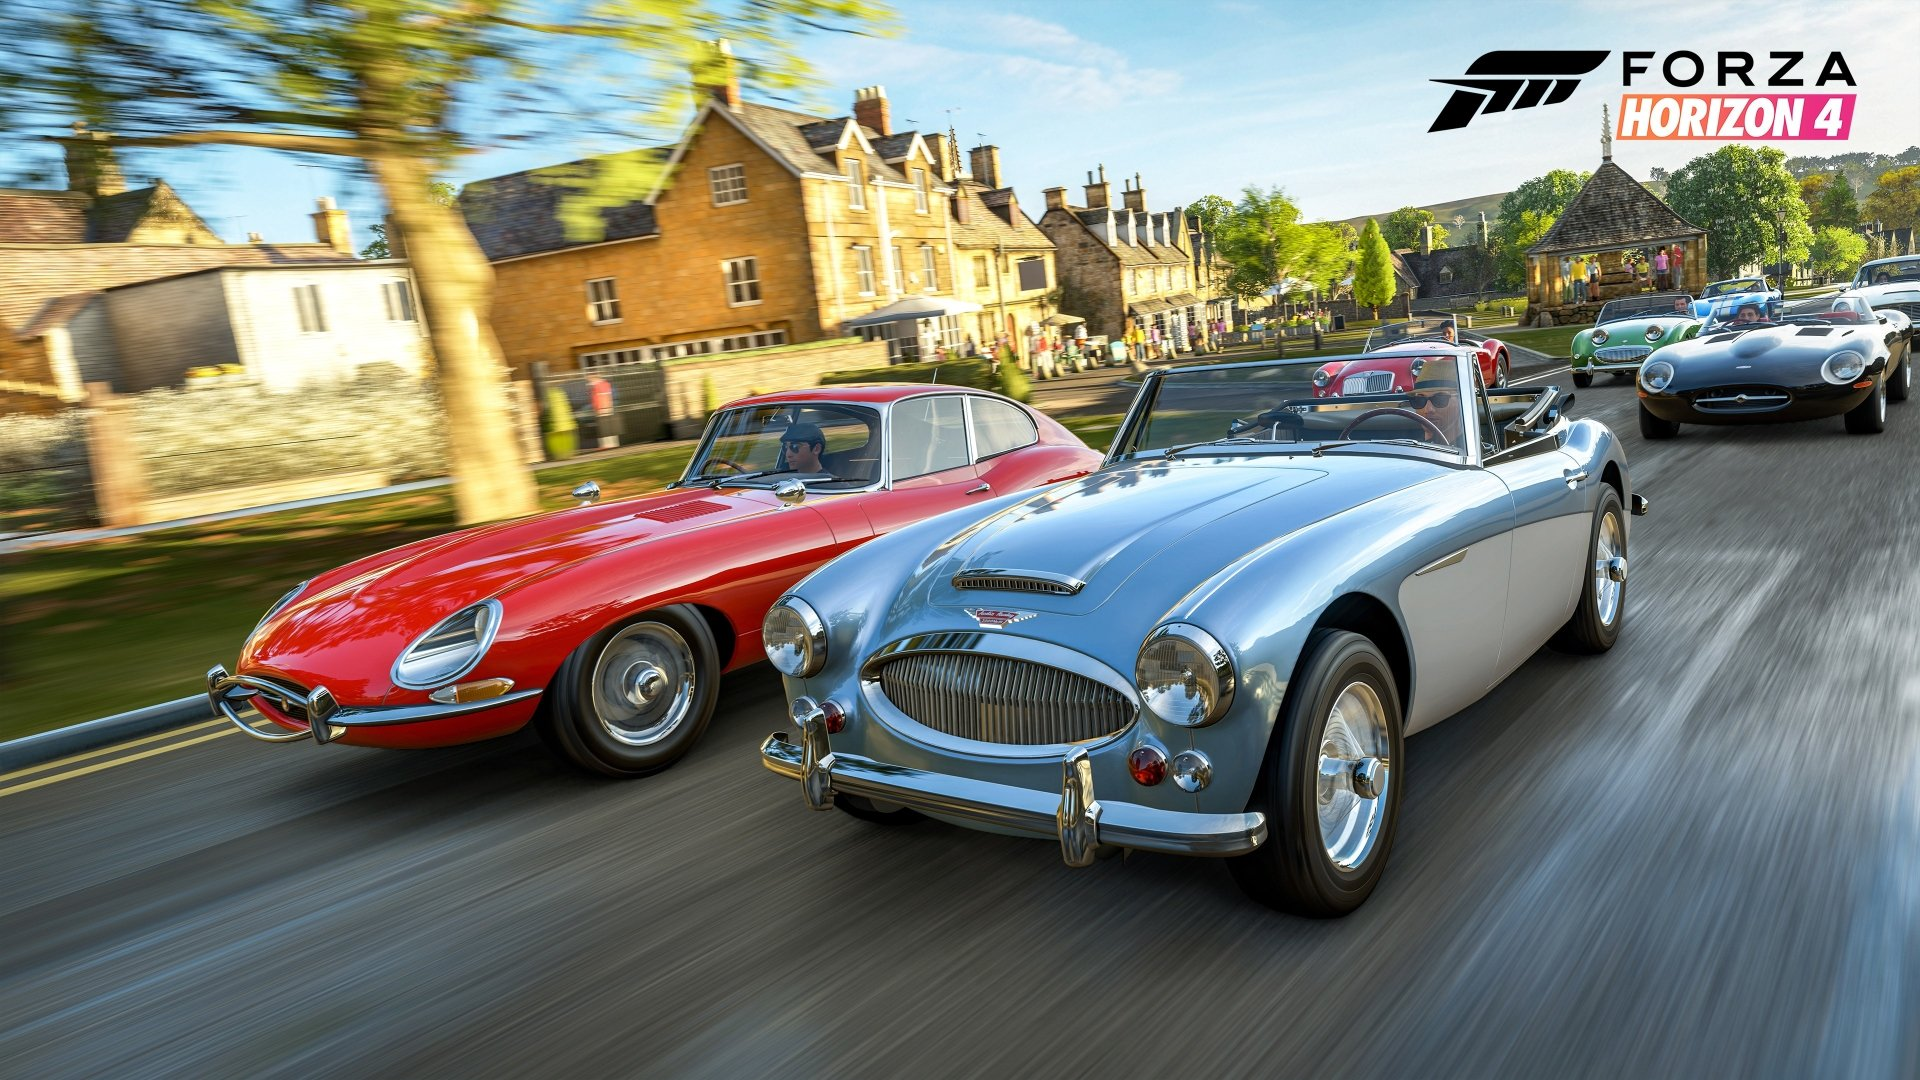 download forza horizon 4 hd wallpapers read games review. Black Bedroom Furniture Sets. Home Design Ideas